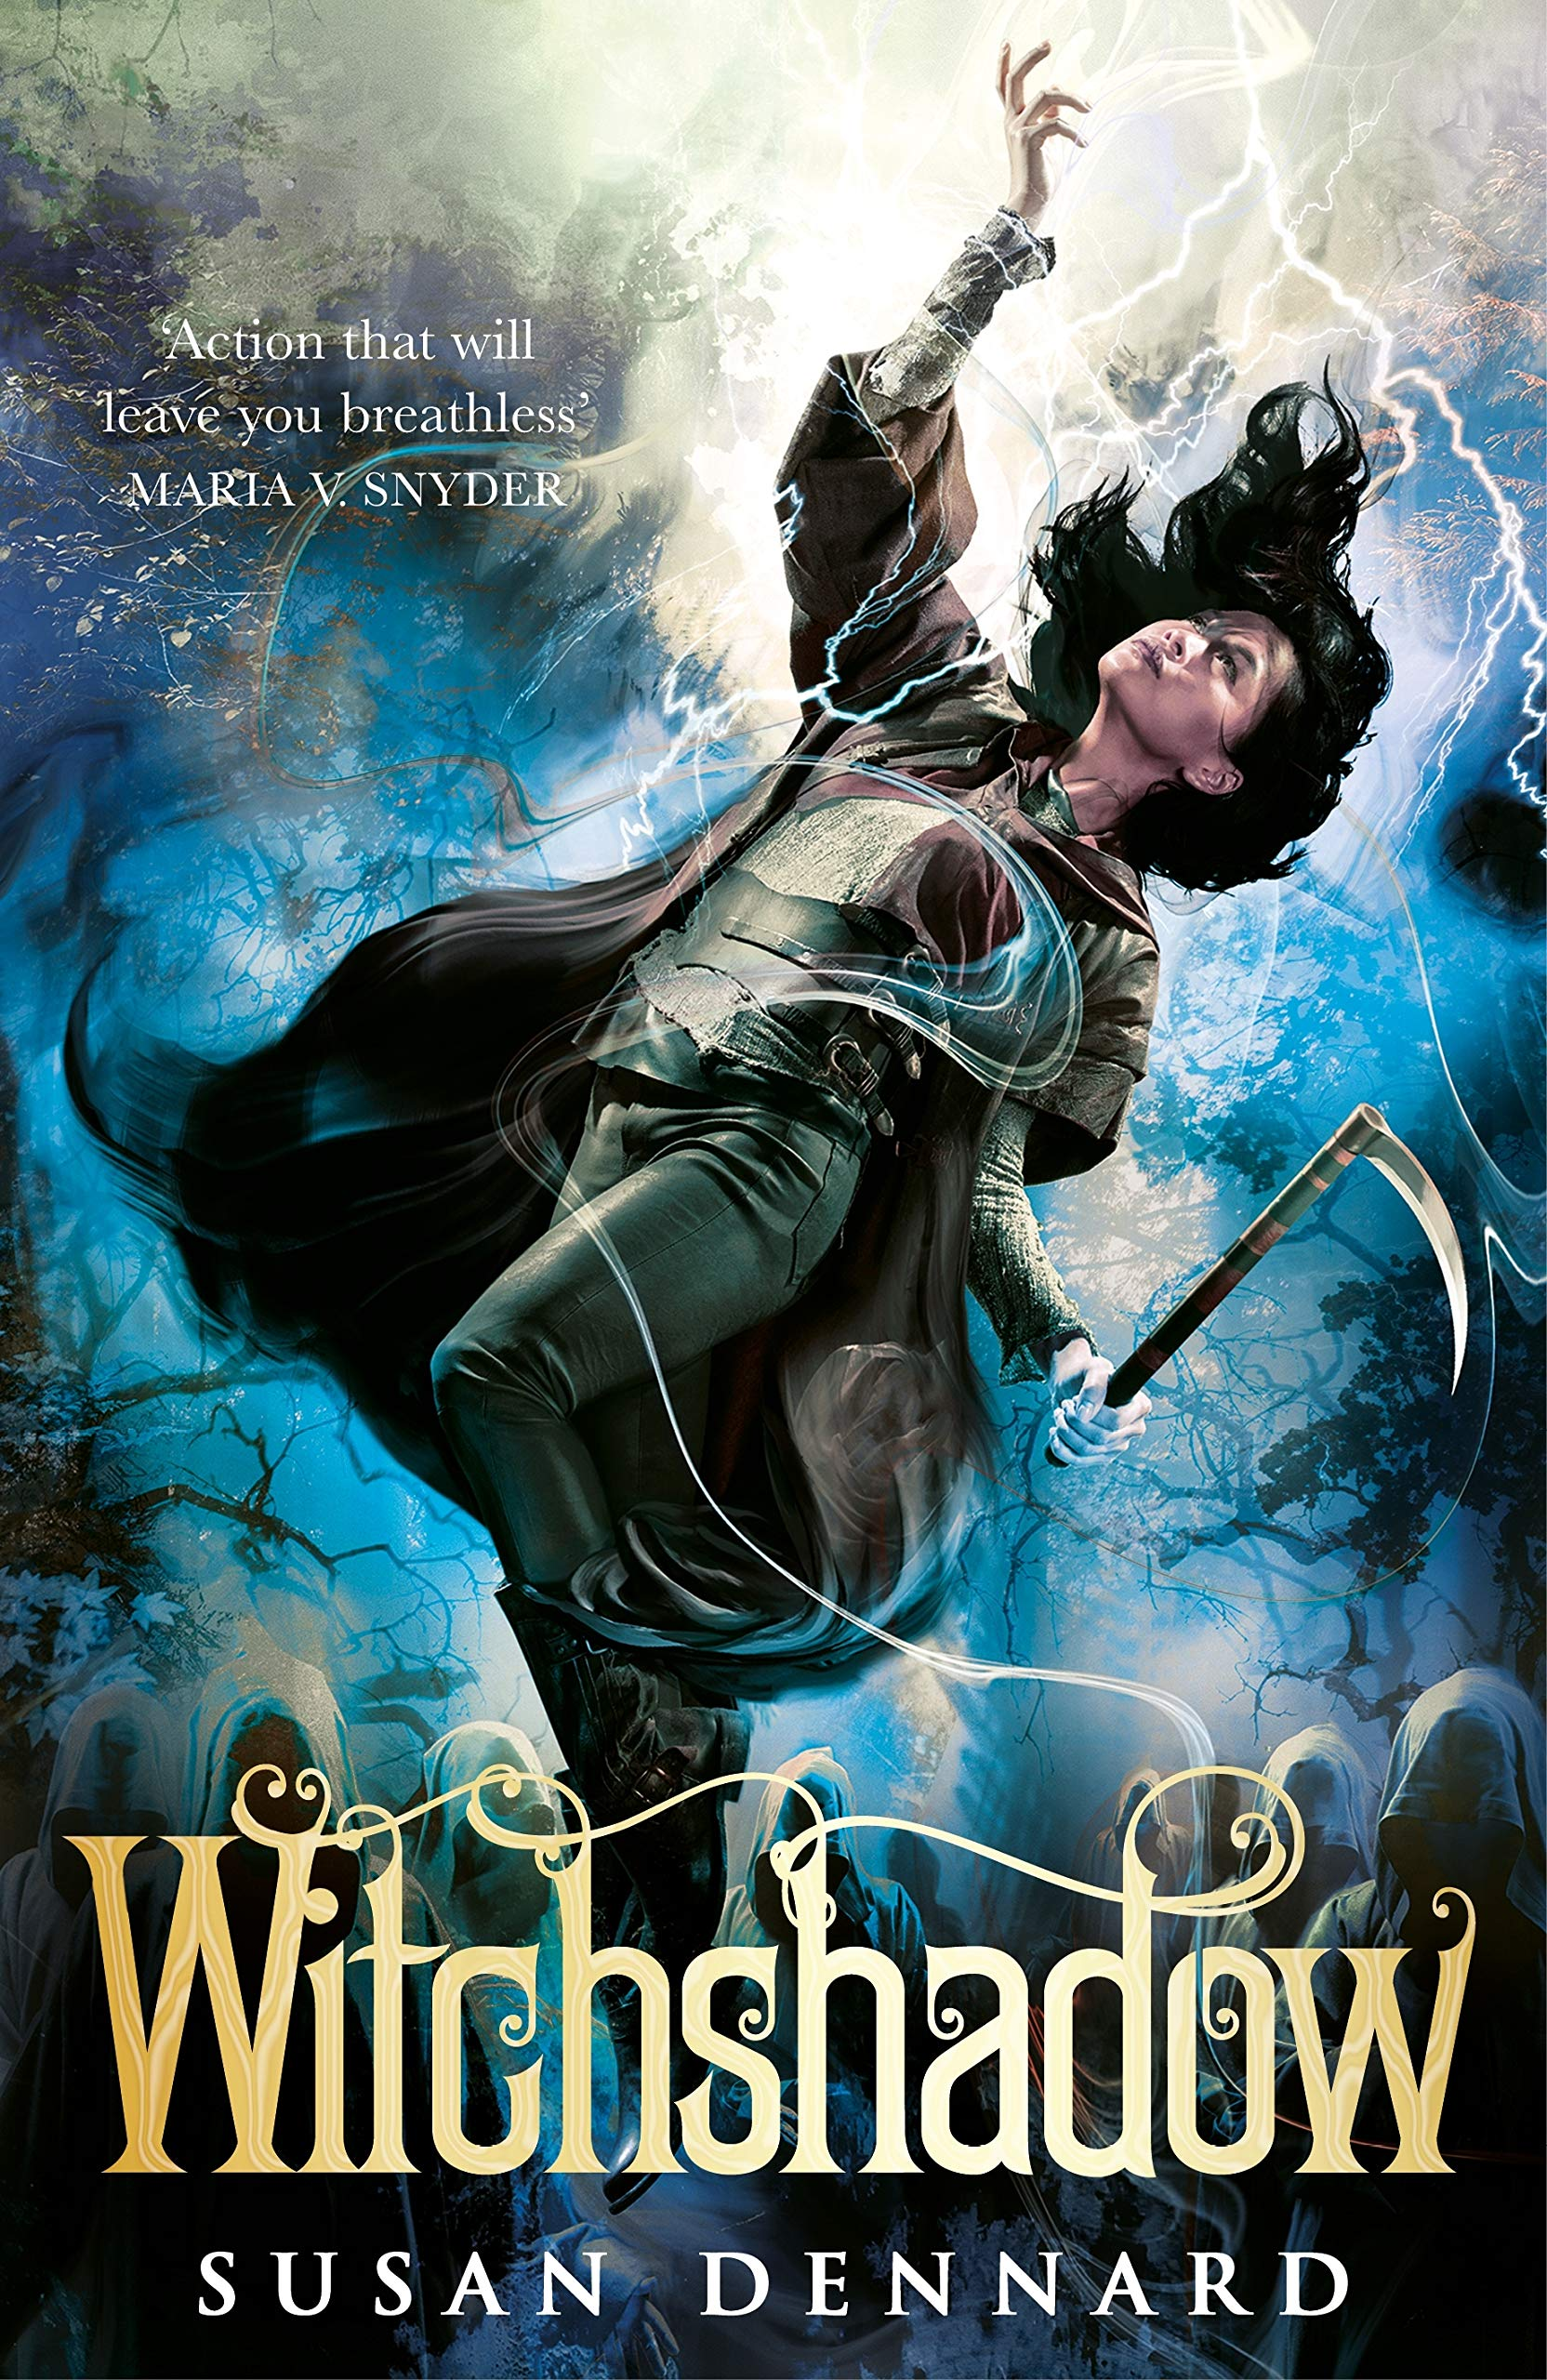 Witchshadow (The Witchlands Series) : Dennard, Susan: Amazon.co.uk: Books